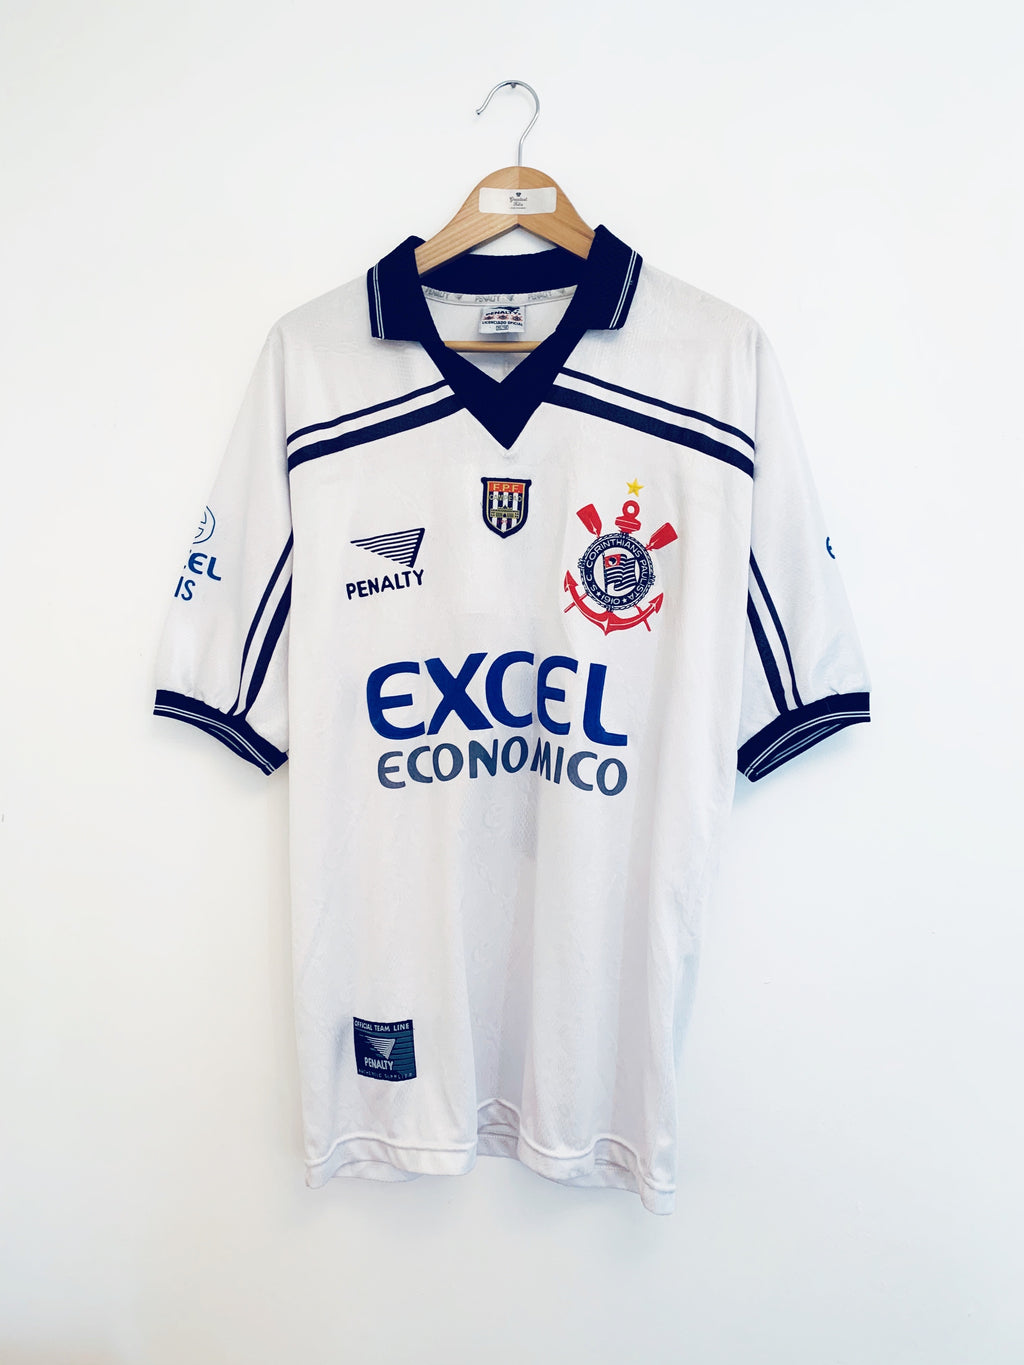 1998 Corinthians Home Shirt #10 (Edilson) (XL) 9/10